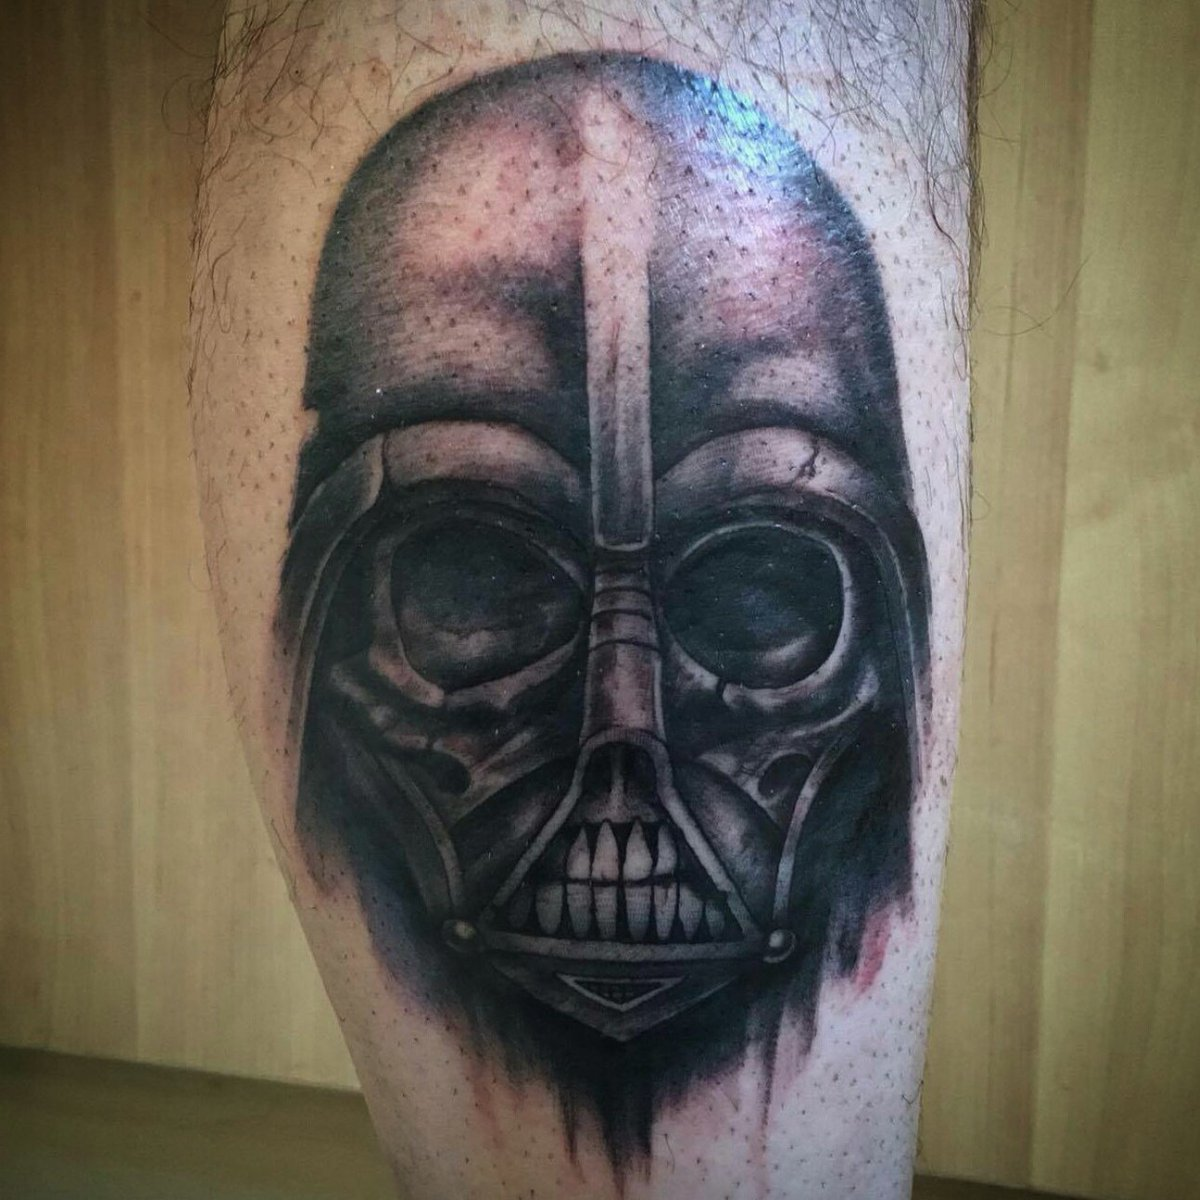 #Tattoo Awesome of the Day: #Gothic #DarthVader Skull Leg Piece by Craig at @thedevilsclubuk #UK #SamaTattoo